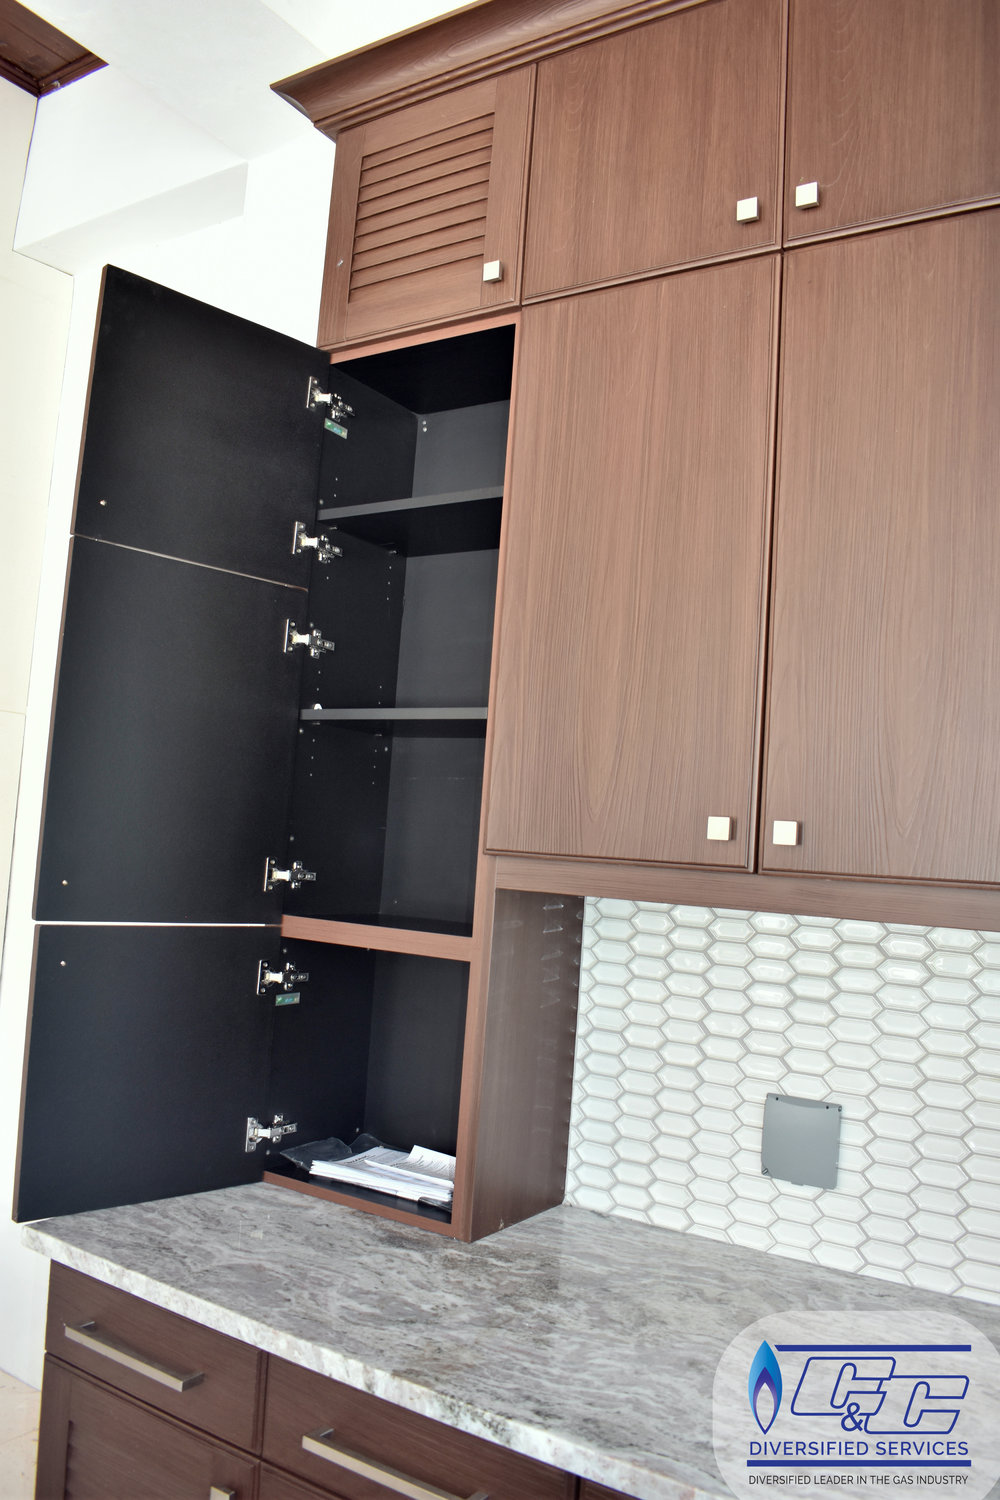 NatureKast Weatherproof Cabinetry - Cabinets, Doors & Drawers